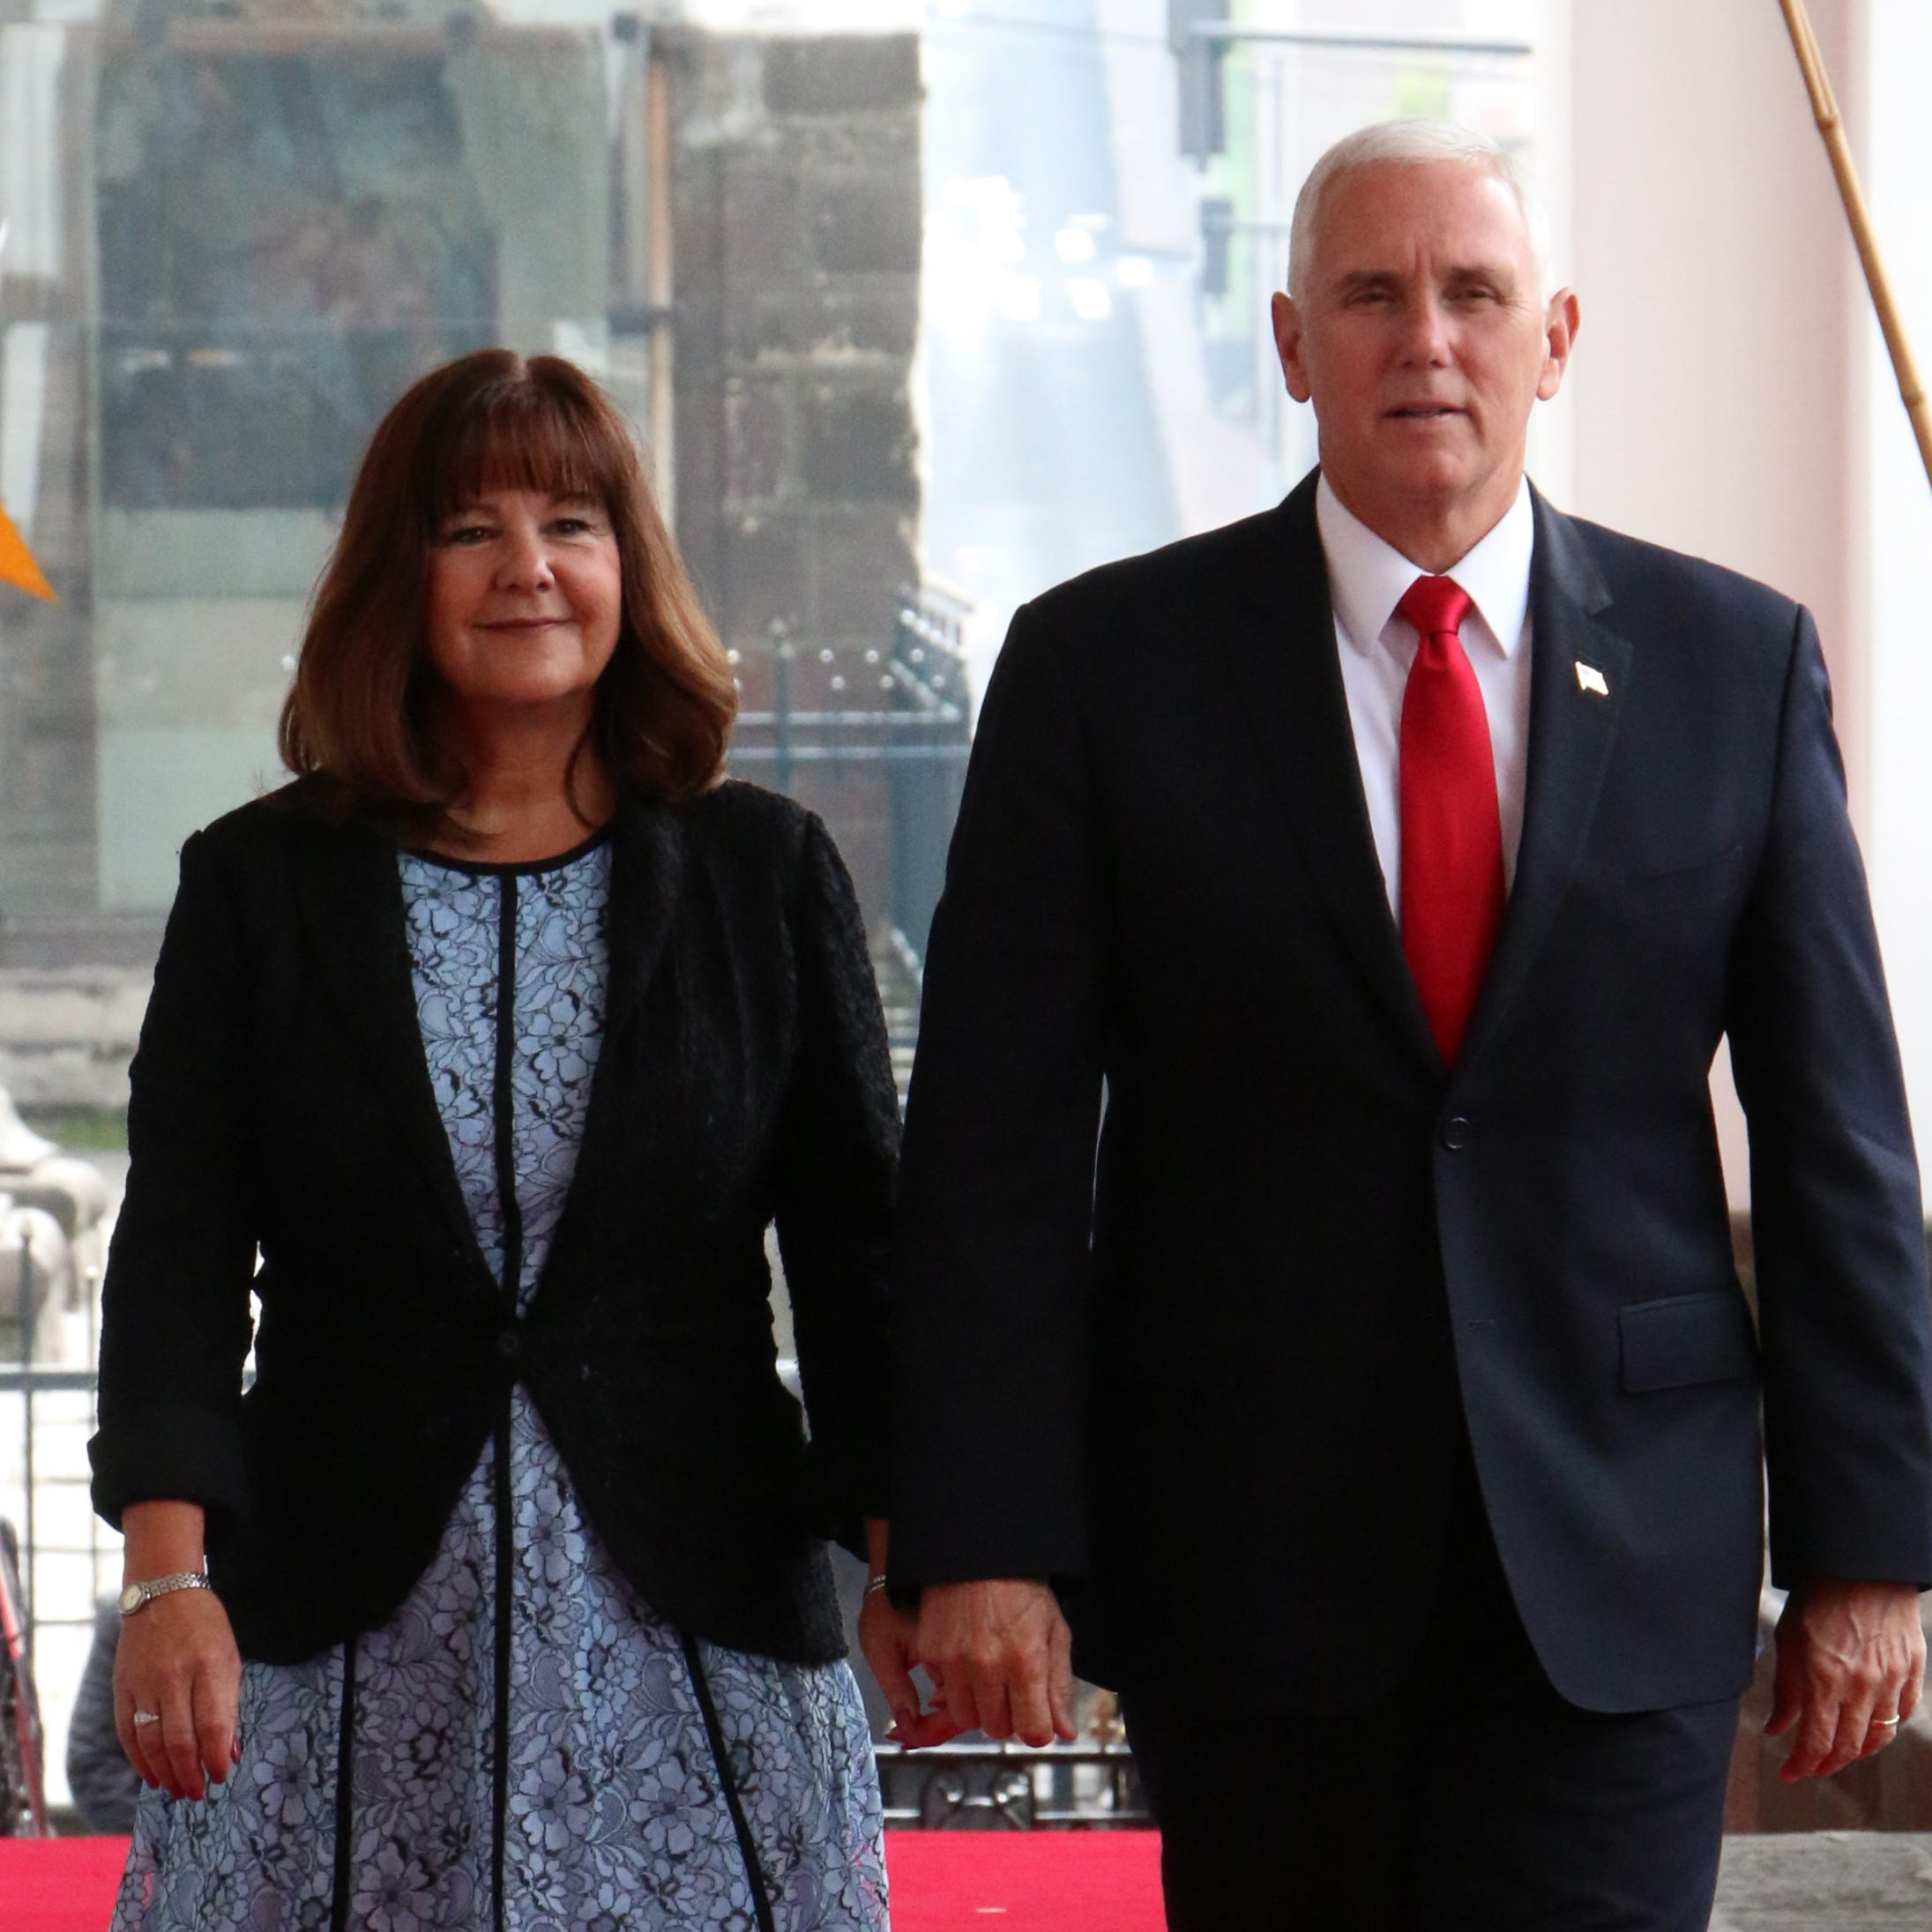 Vice President Mike Pence and wife Karen at the Carondelet Palace in Quito, Ecuador on June, 28 2018.